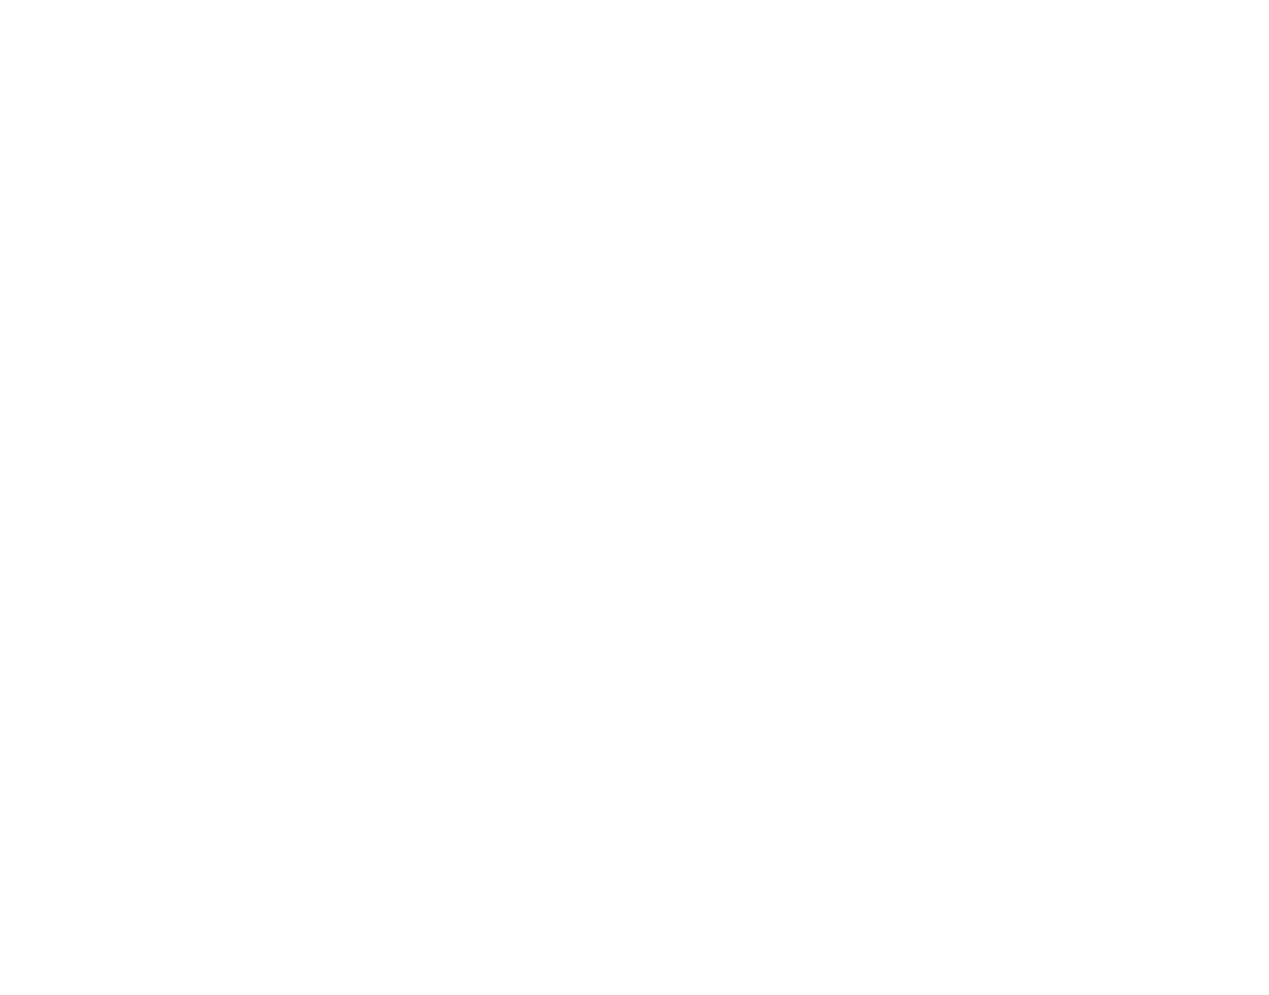 Logotipo da Estilo do Corpo